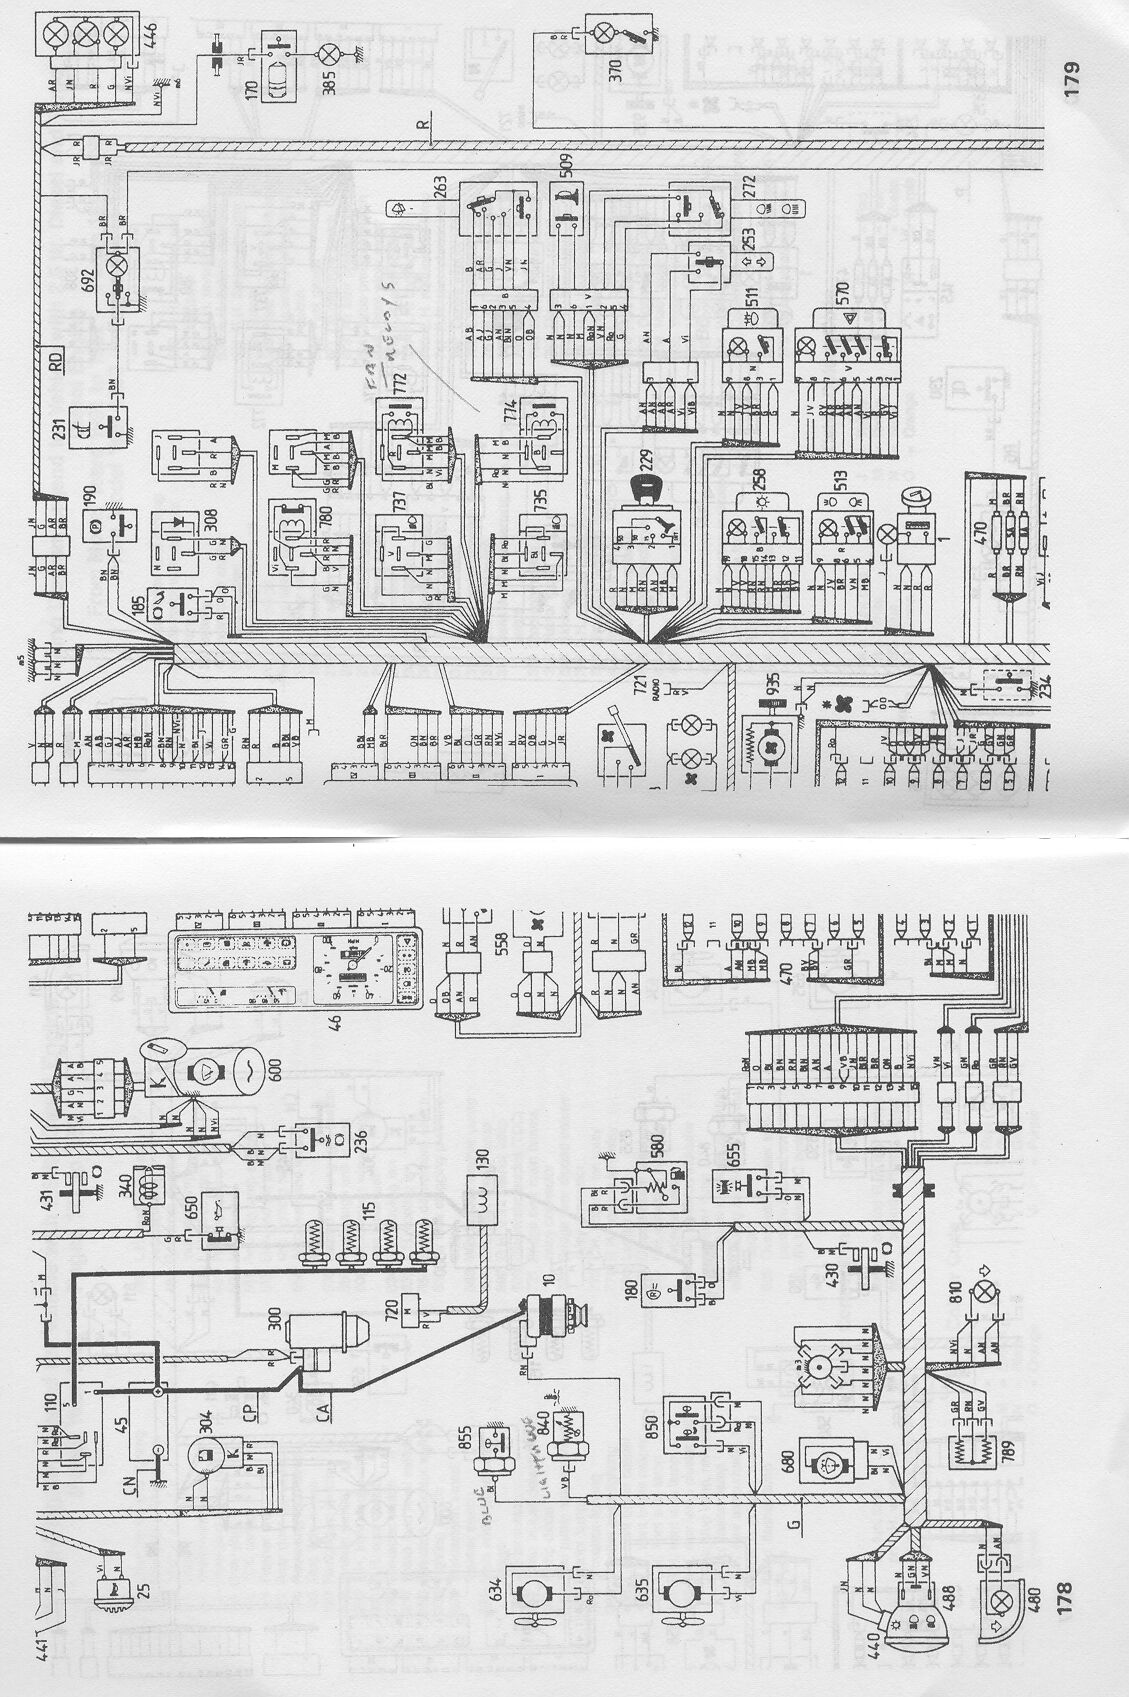 fiat peugeot jeep wiring diagram electrical diagram j5 2 5d 3